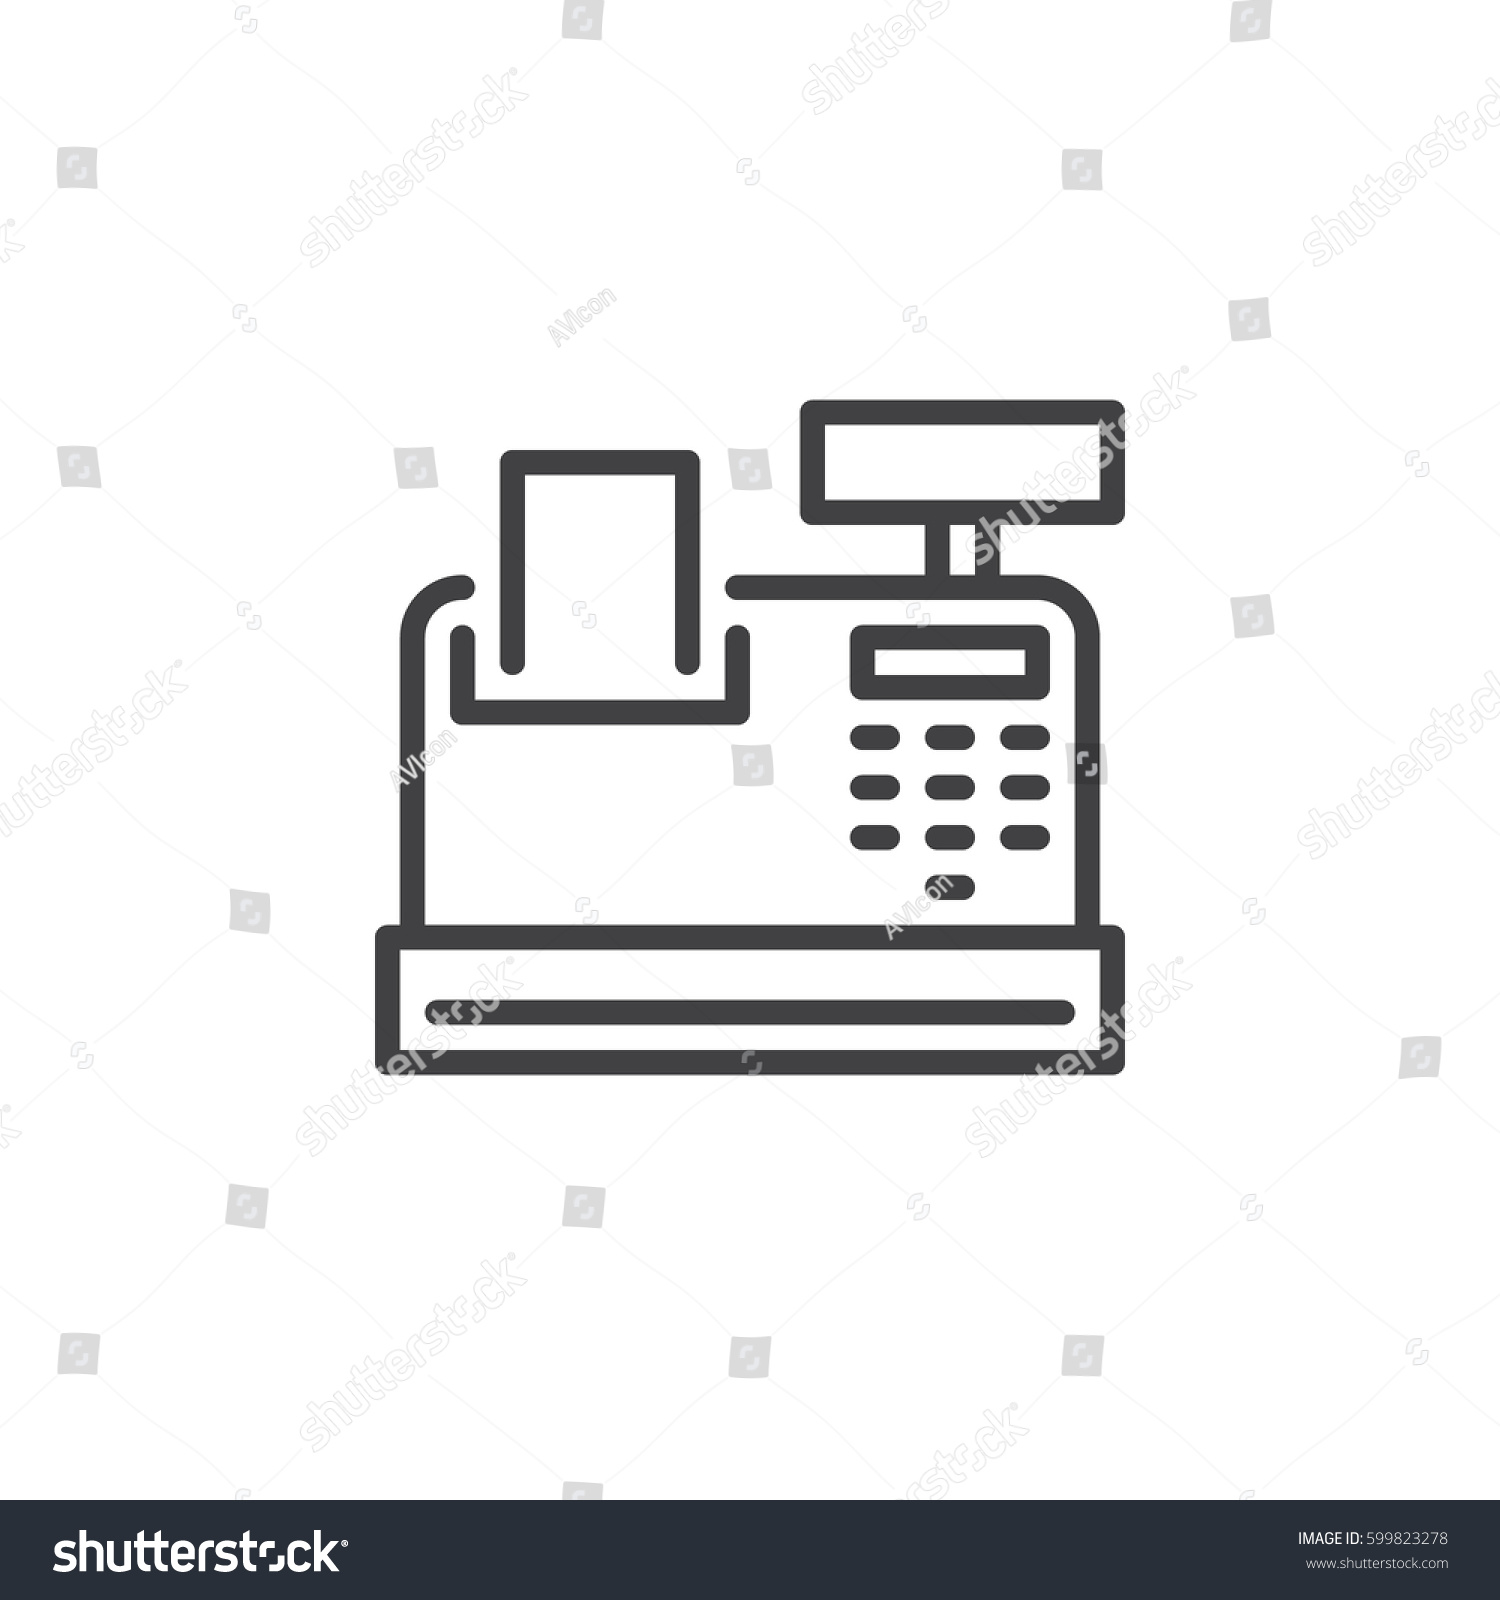 Cash Register Line Icon Outline Vector Stock Vector ...